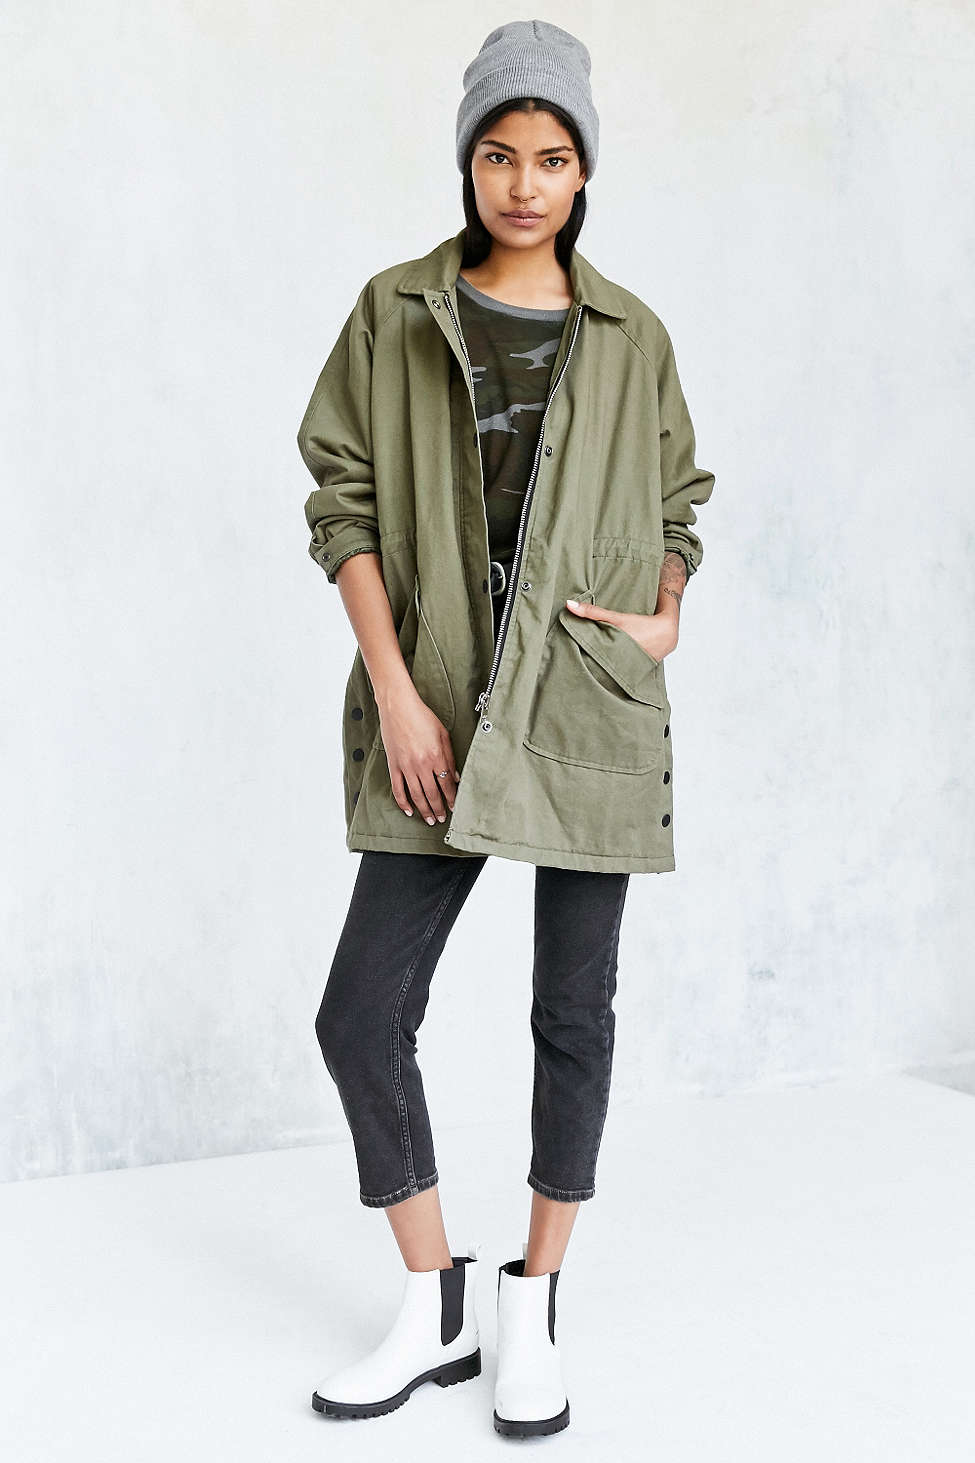 Everyone should have an anorak in their closet - these jackets pair perfectly with a T-shirt + denim for the perfect casual weekend look.This oversized army green jacket is absolutely perfect for fall!